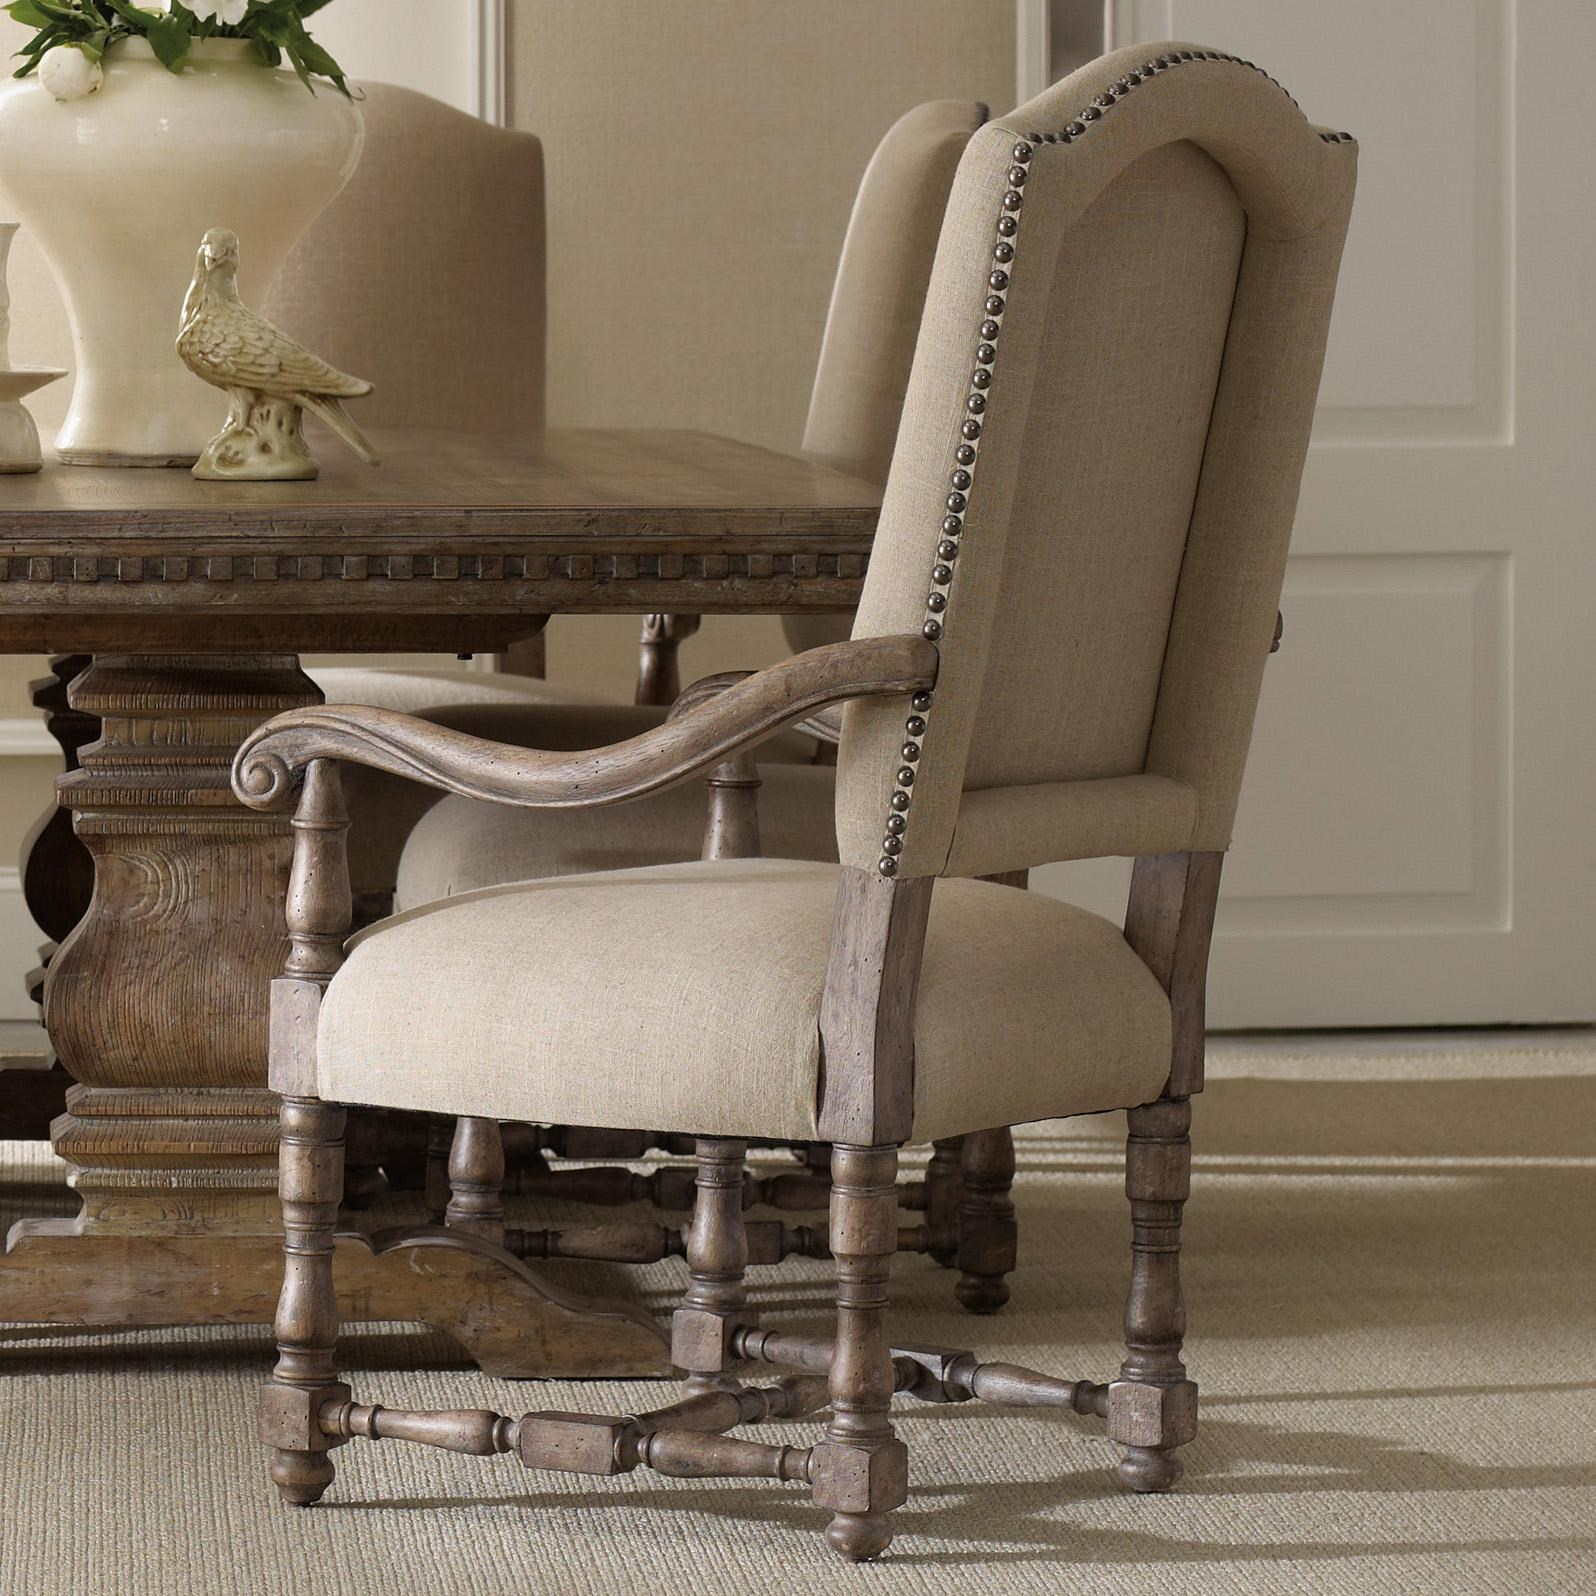 Upholstered Dining Arm Chair with Scrolled Armrests, Turned Stretcher and Nailhead Trim